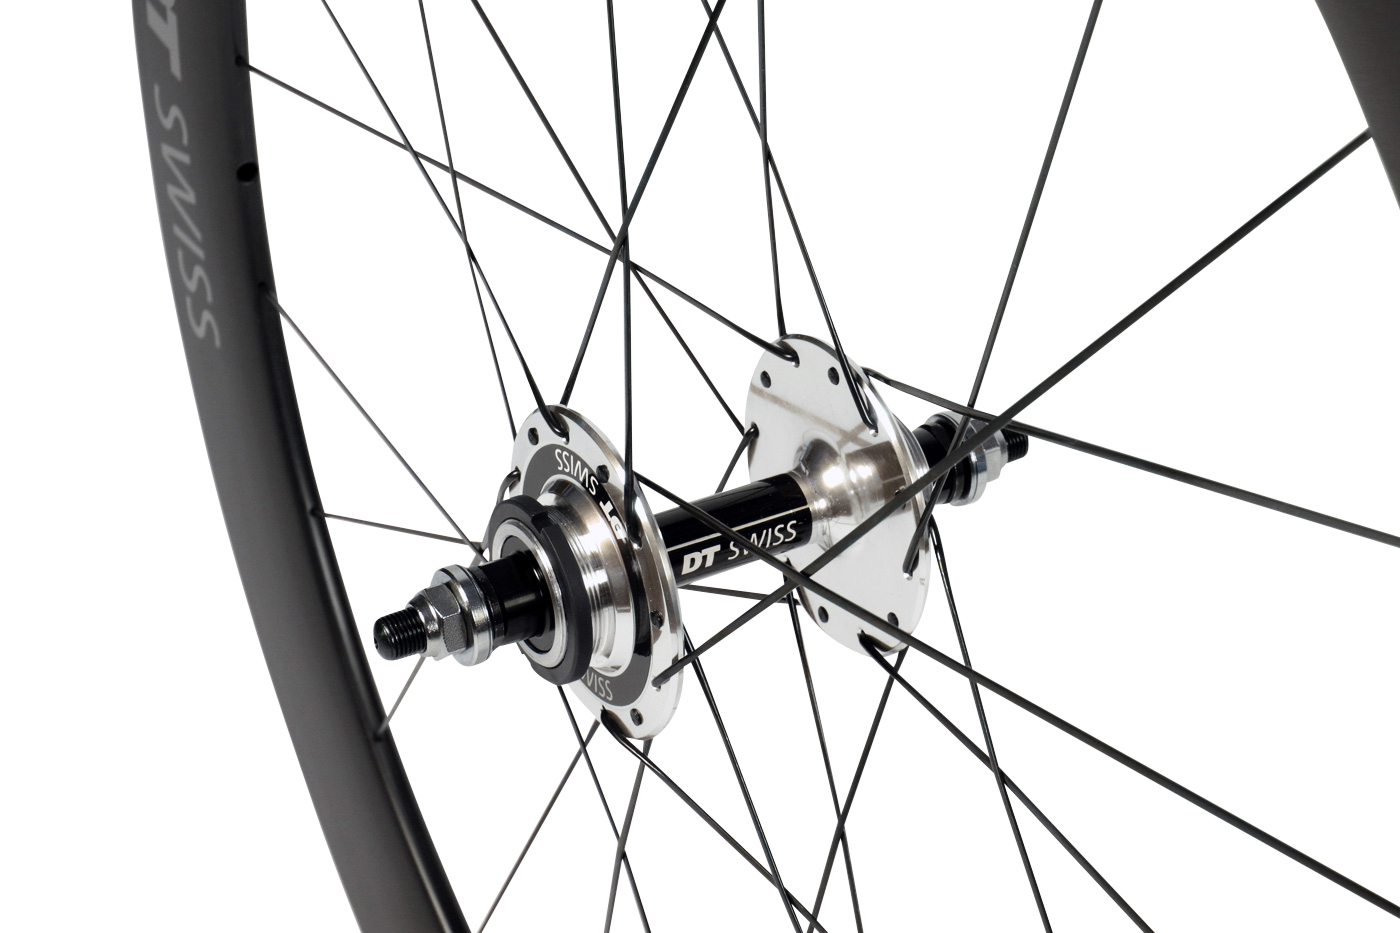 DT Swiss team 04 - DT Swiss wheels - Now available at 8bar bikes